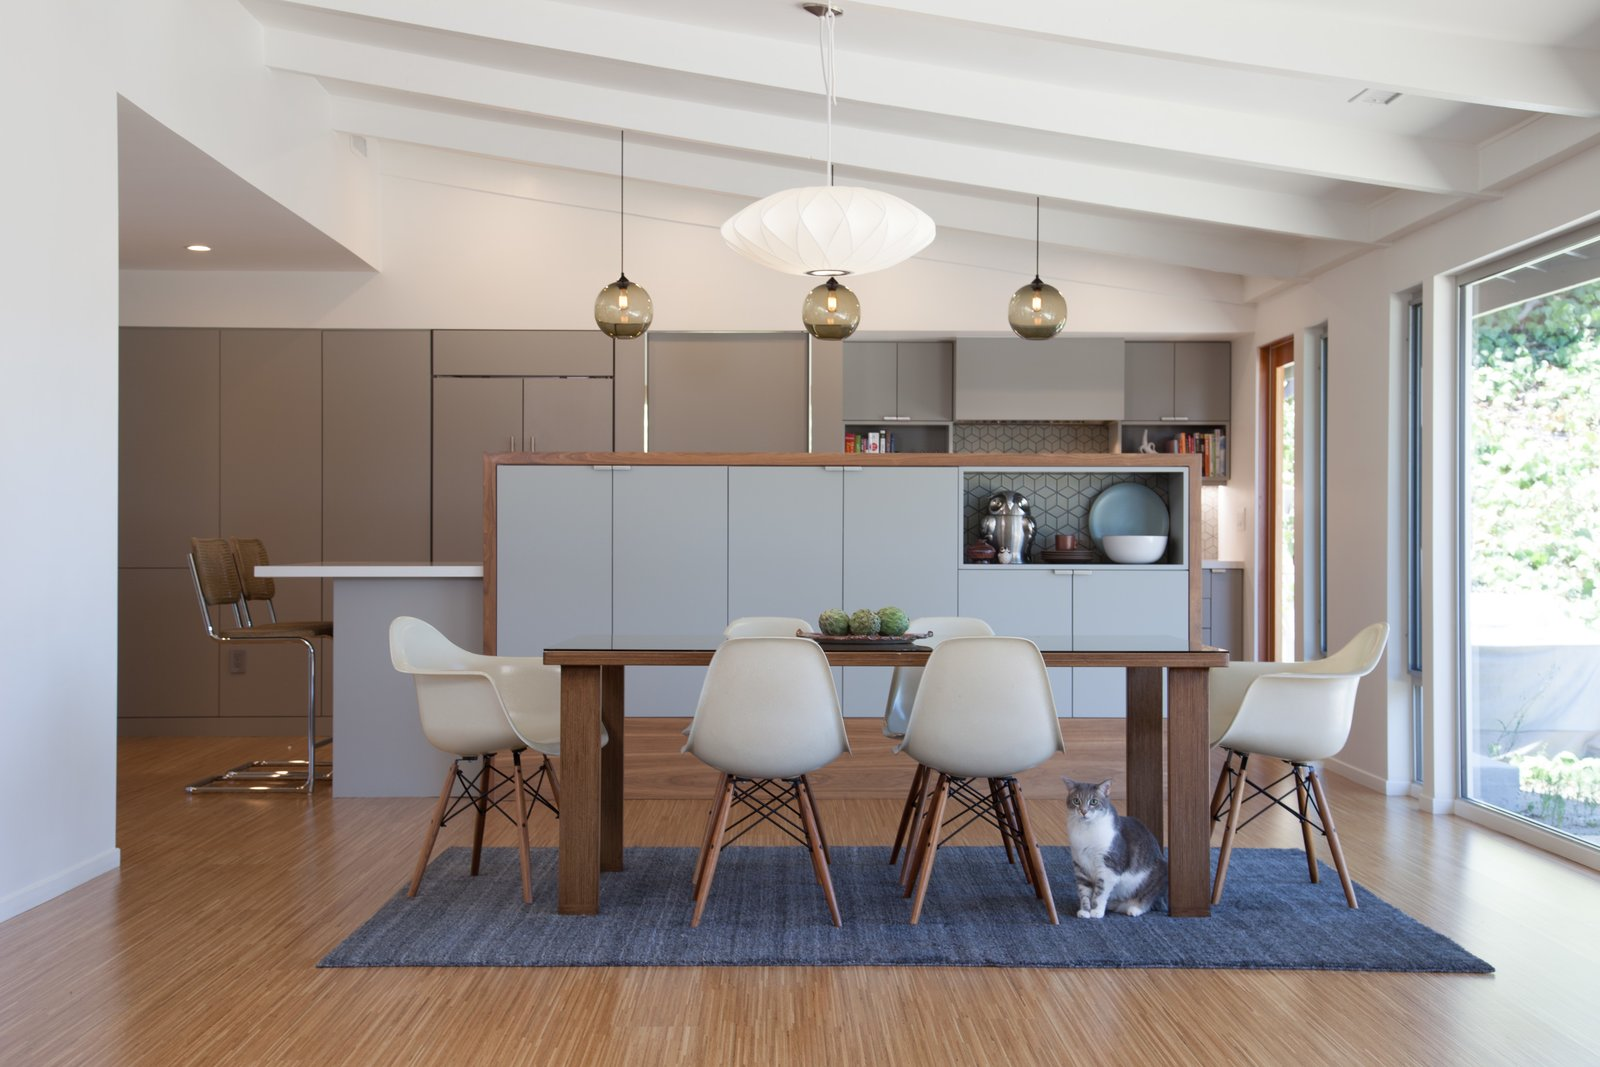 Photo 5 of 5 in Pinterest Inspired Home Includes Niche Modern Kitchen Pendant Lights